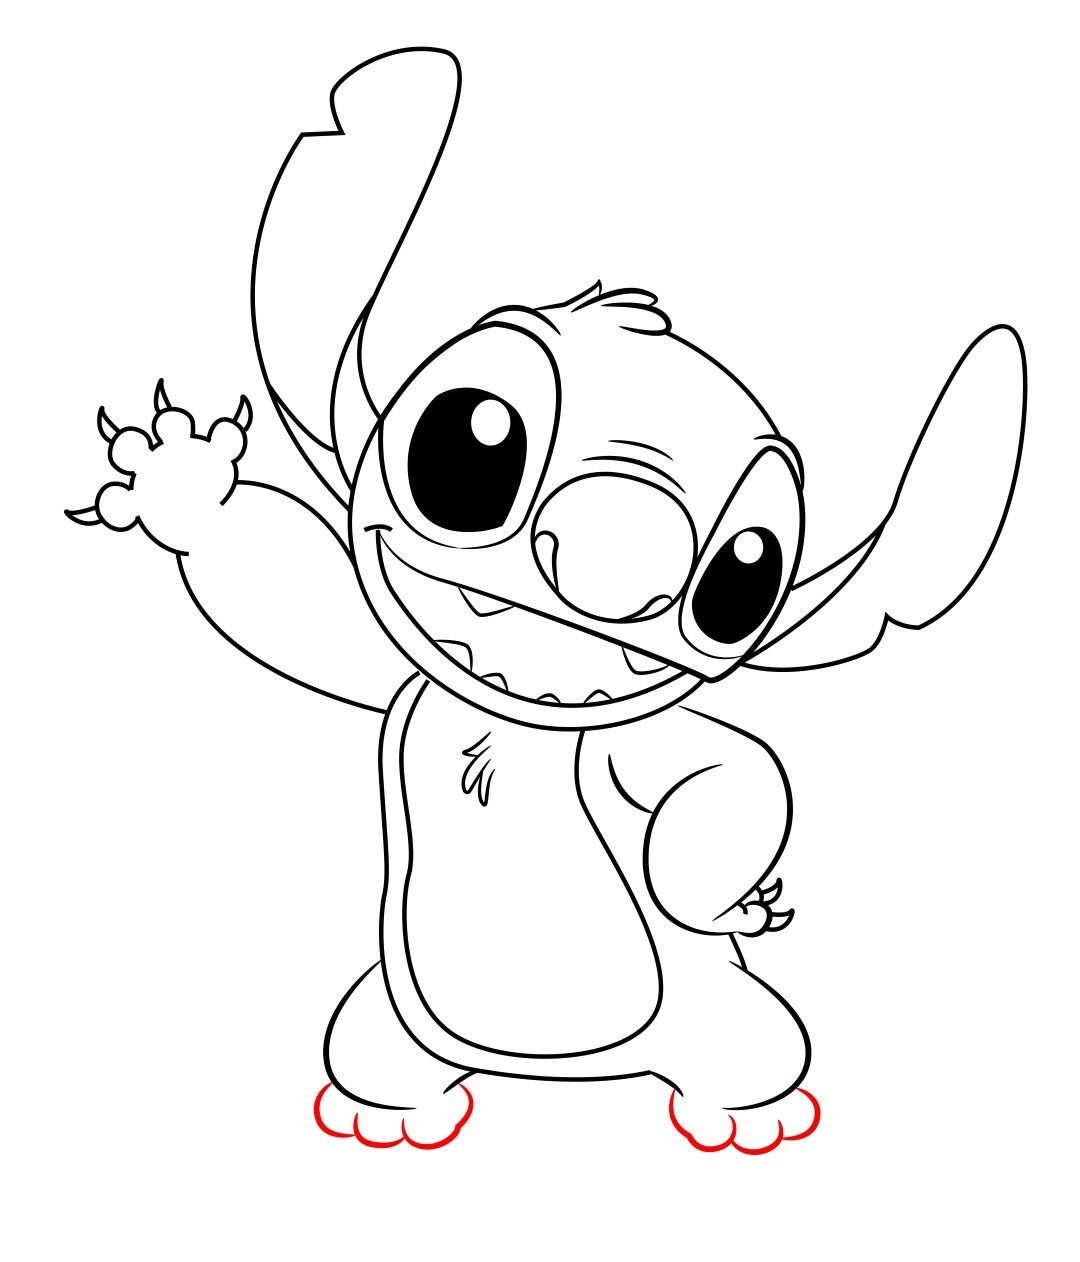 How to draw stitch from lilo and stitch lilo stitch